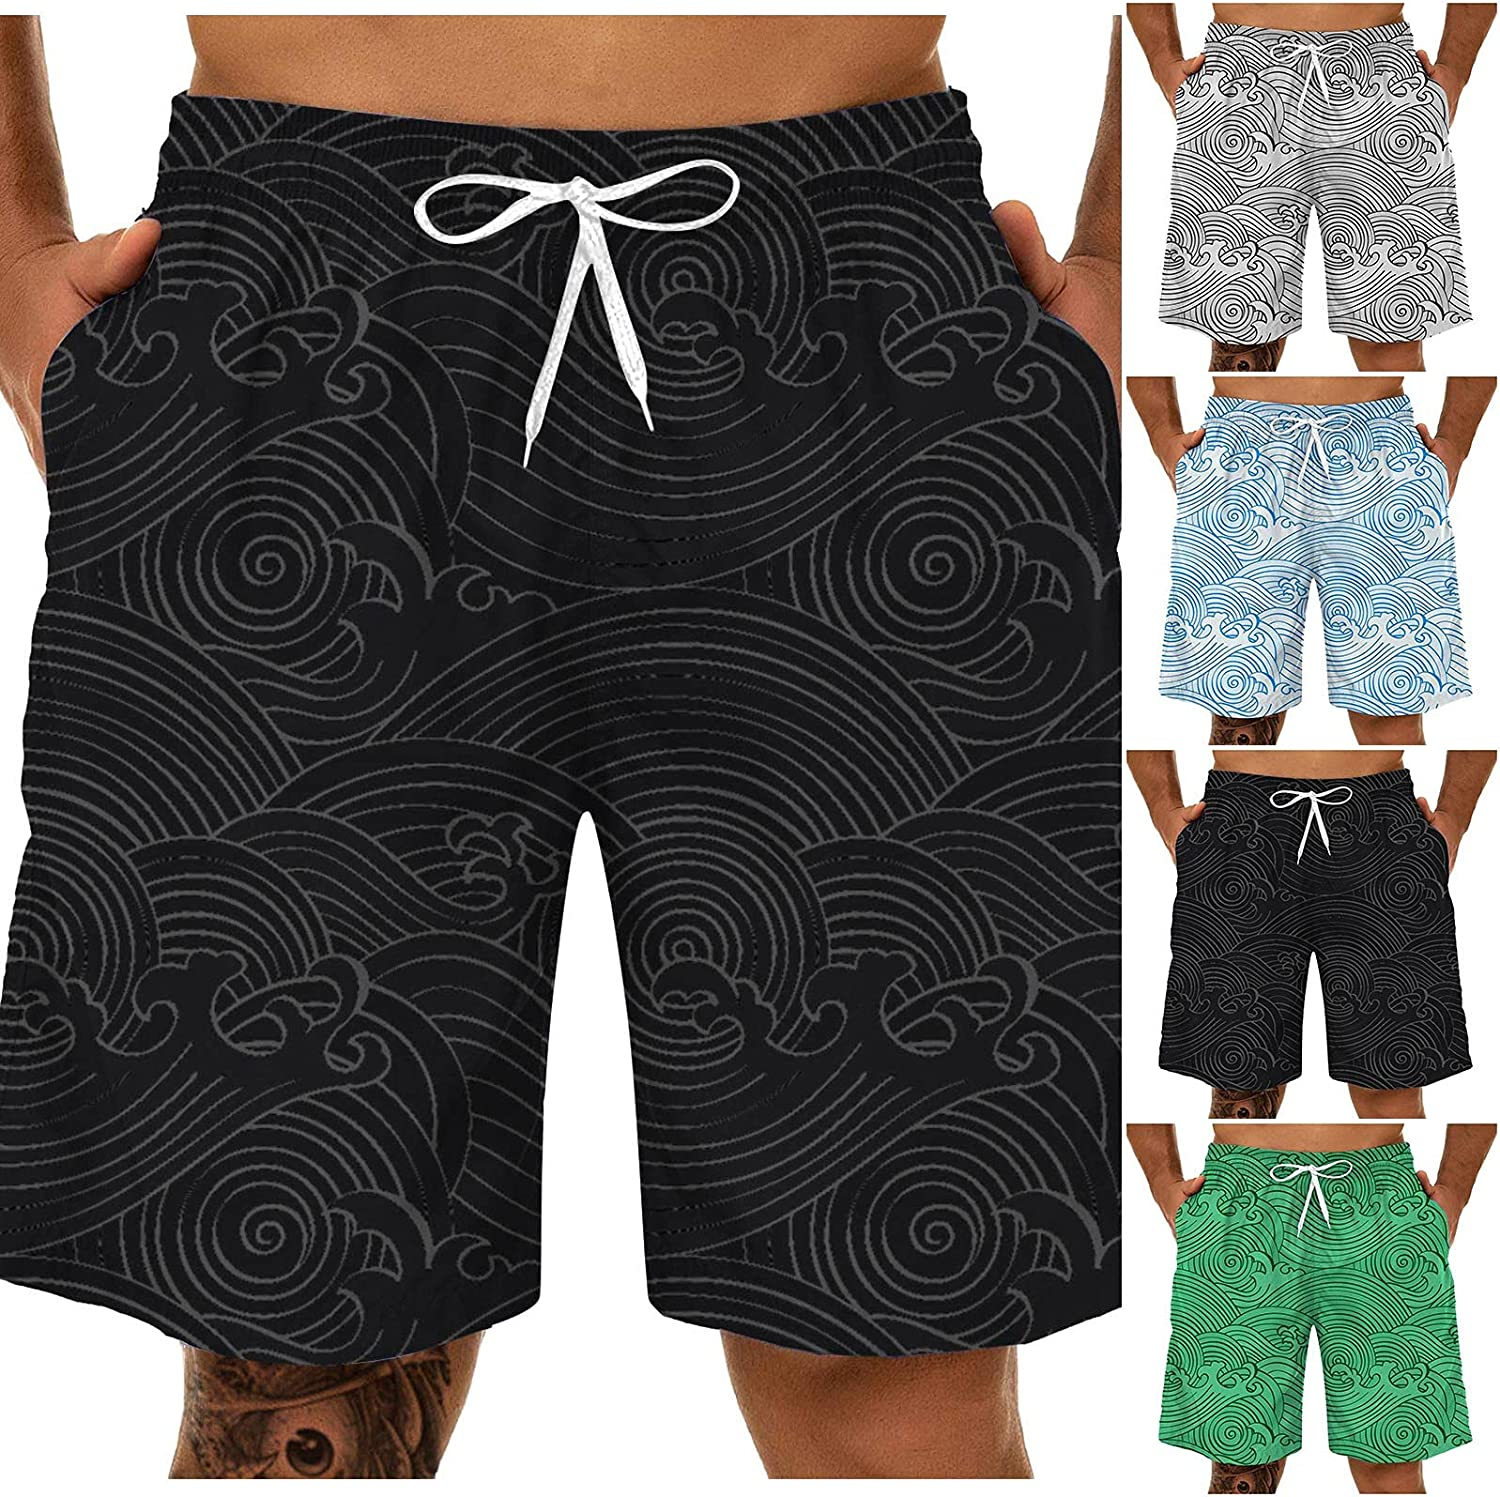 Plus Size Swim Trunks for Men,Quick Dry Beach Short 3D Waves Printed Hawaii Swimwear Board Shorts with Pockets